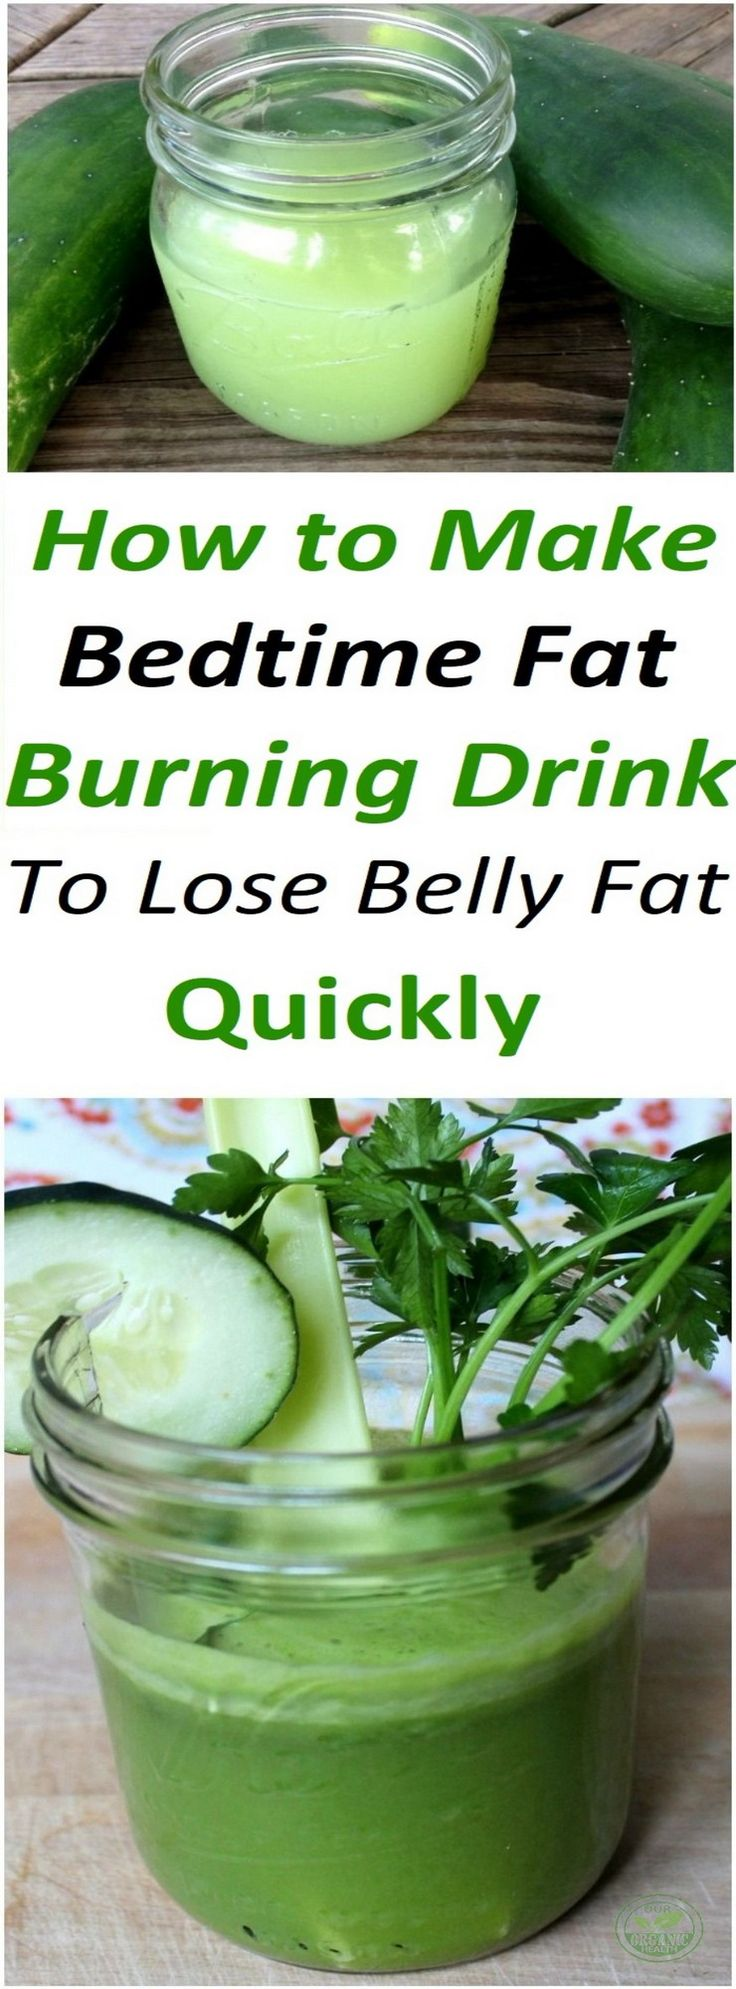 The process of losing weight can be very hard and you have to be really dedicated, patient and not to do it in a hurry. In case your lifestyle is sedentary, you'll find it even harder to lose weight. You need to exercise regularly or just cycle or walk to have good results.  #drinks #fatloss #recipe #healthy #weightloss